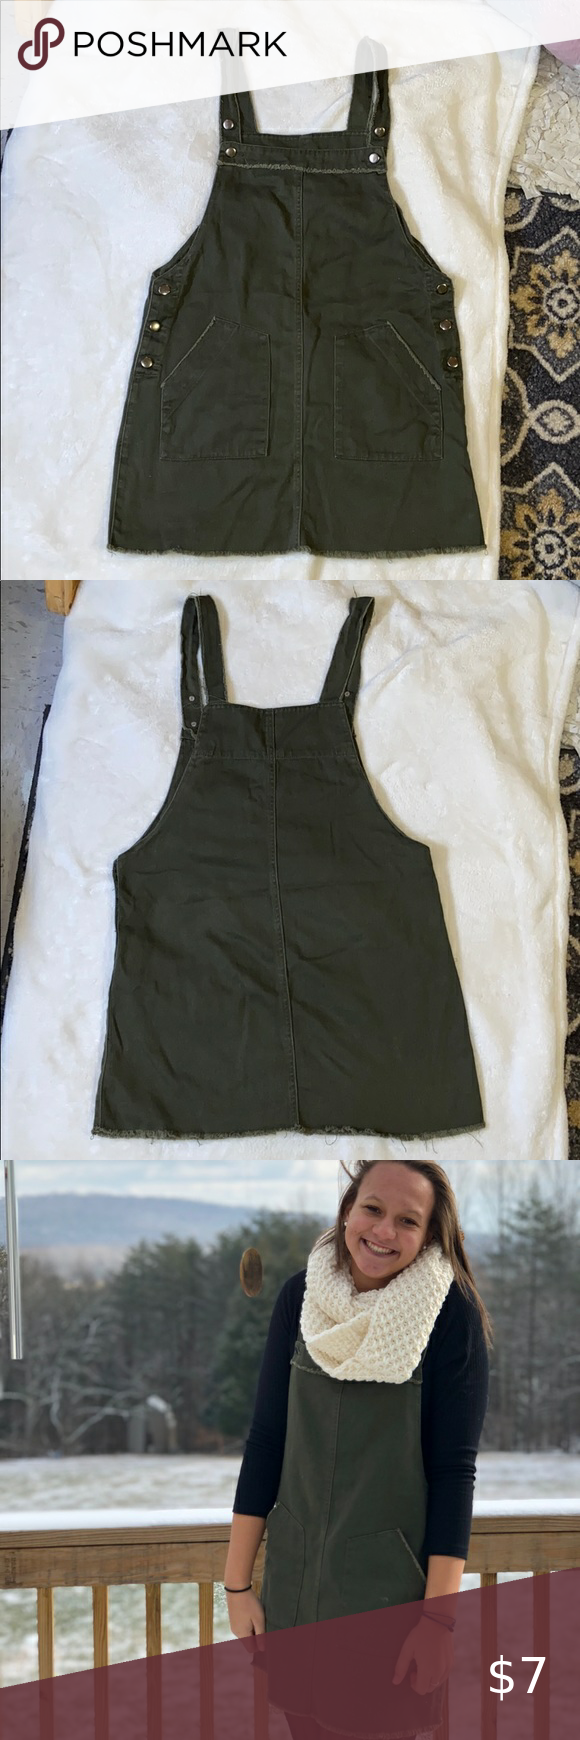 Green Overall Dress Overall Dress Clothes Design Overalls [ 1740 x 580 Pixel ]